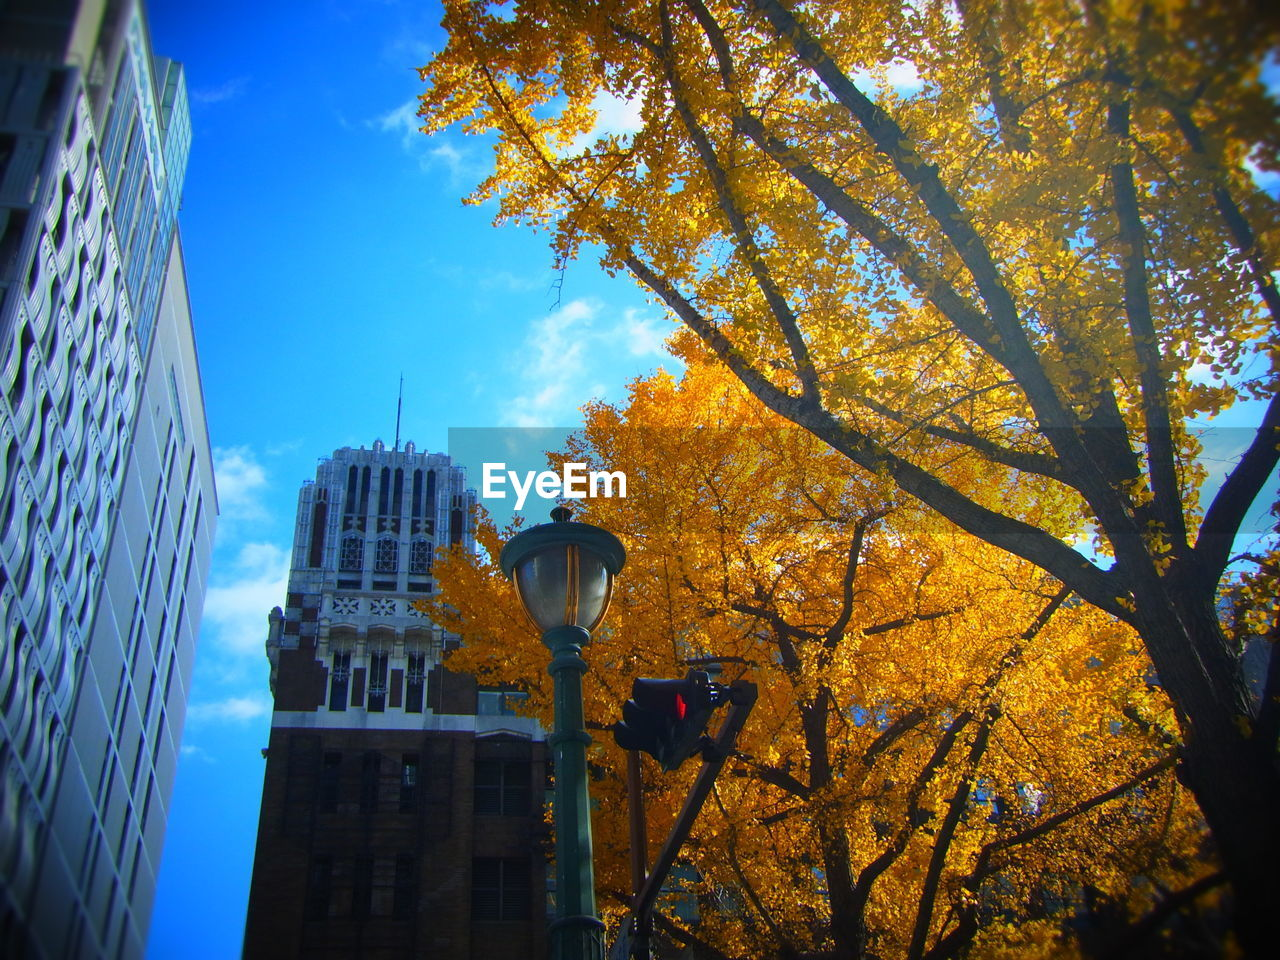 Low Angle View Of Street Light By Autumn Trees Against Skyscrapers